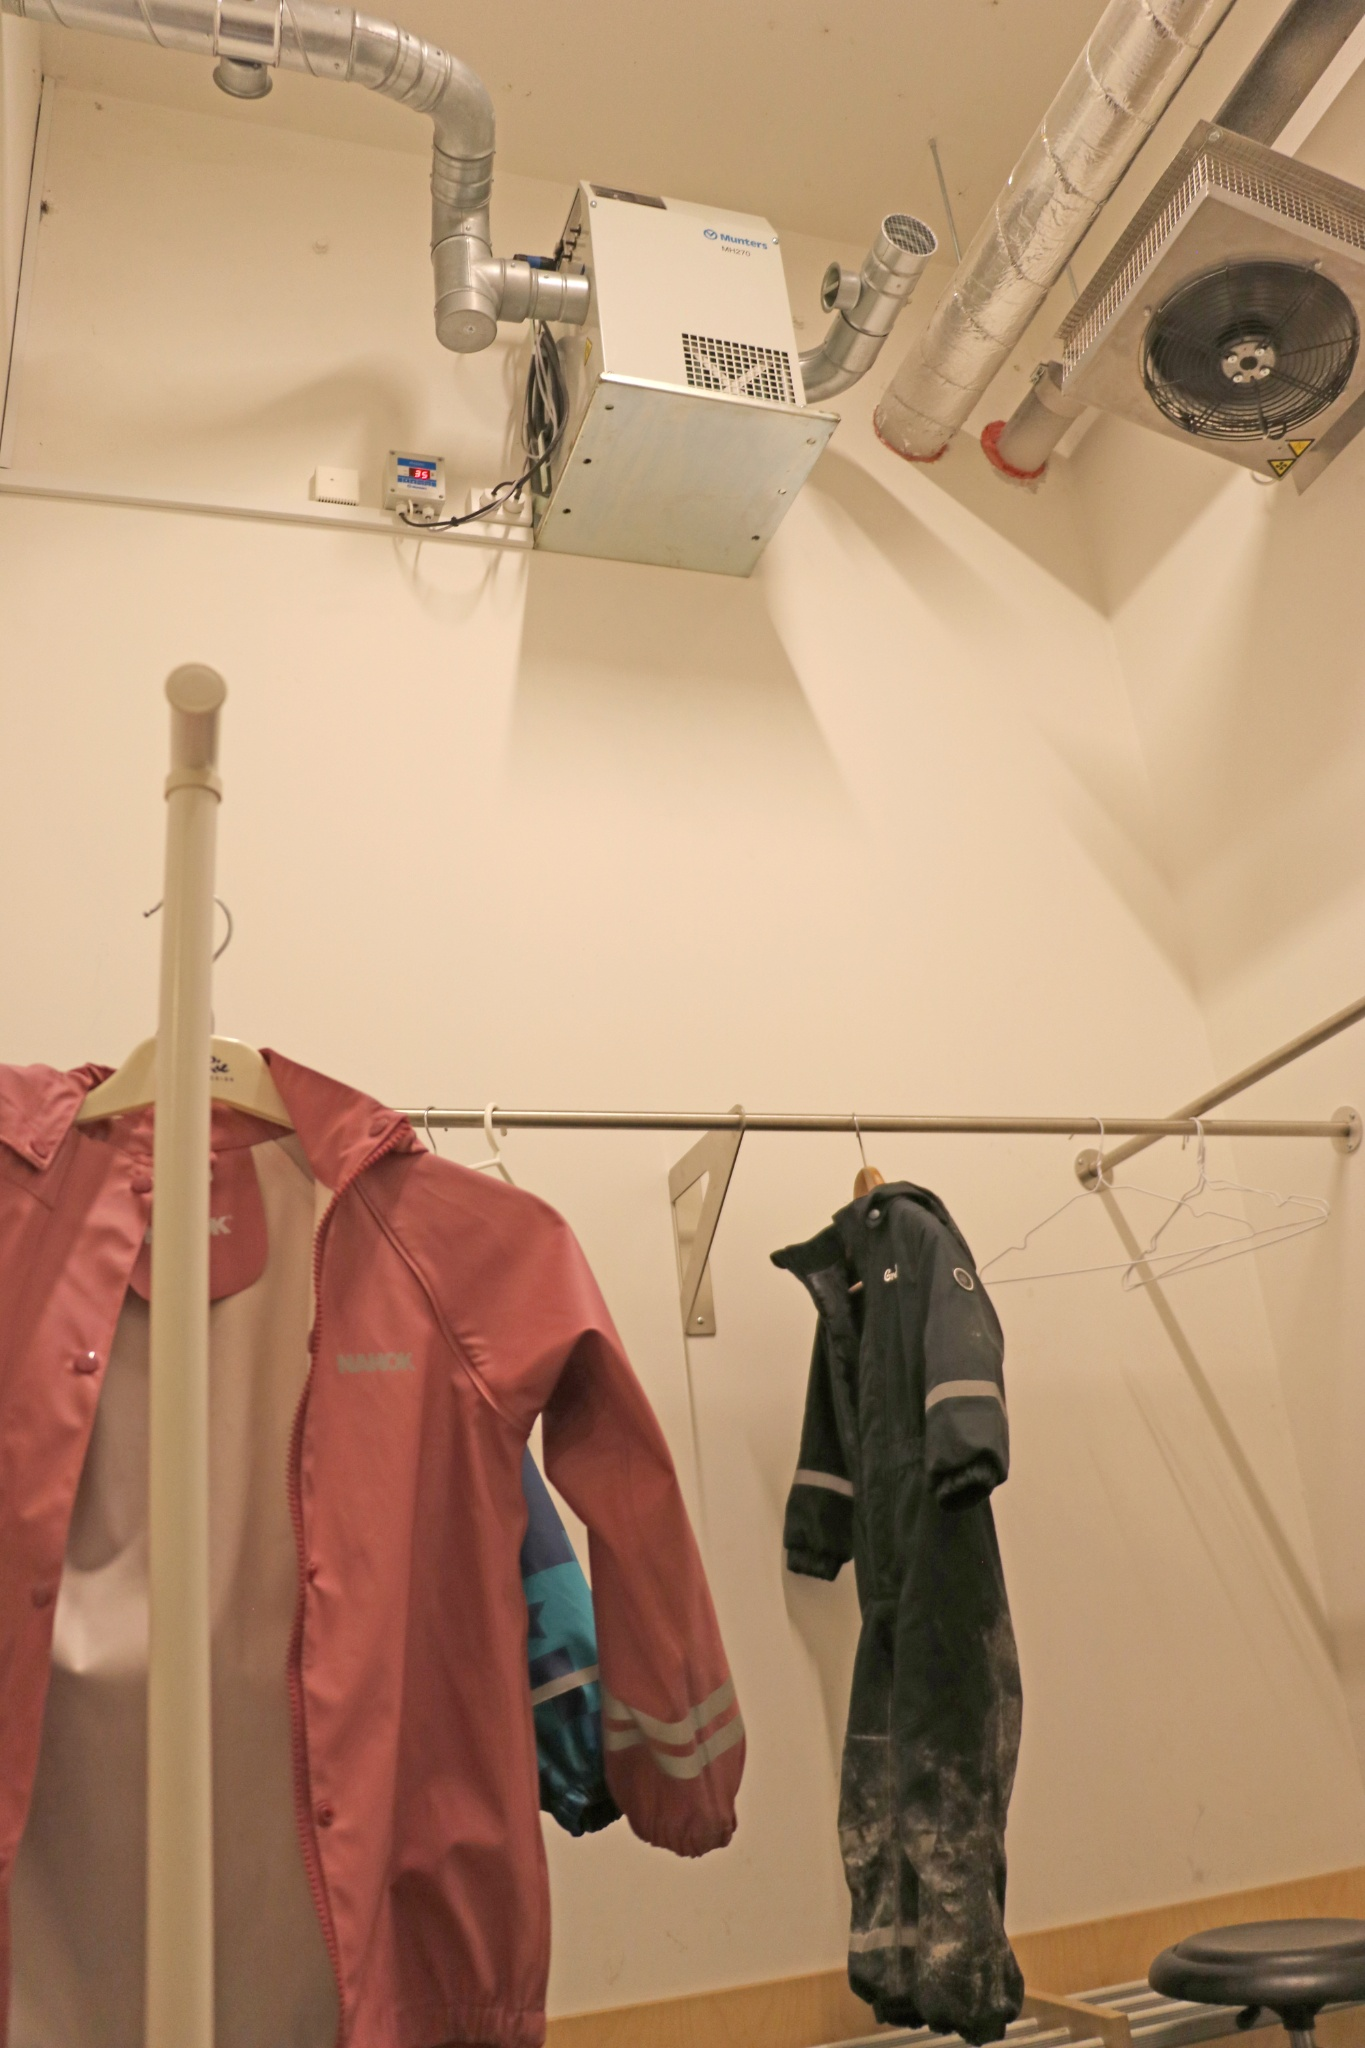 CPH_Daycare_Small drying room